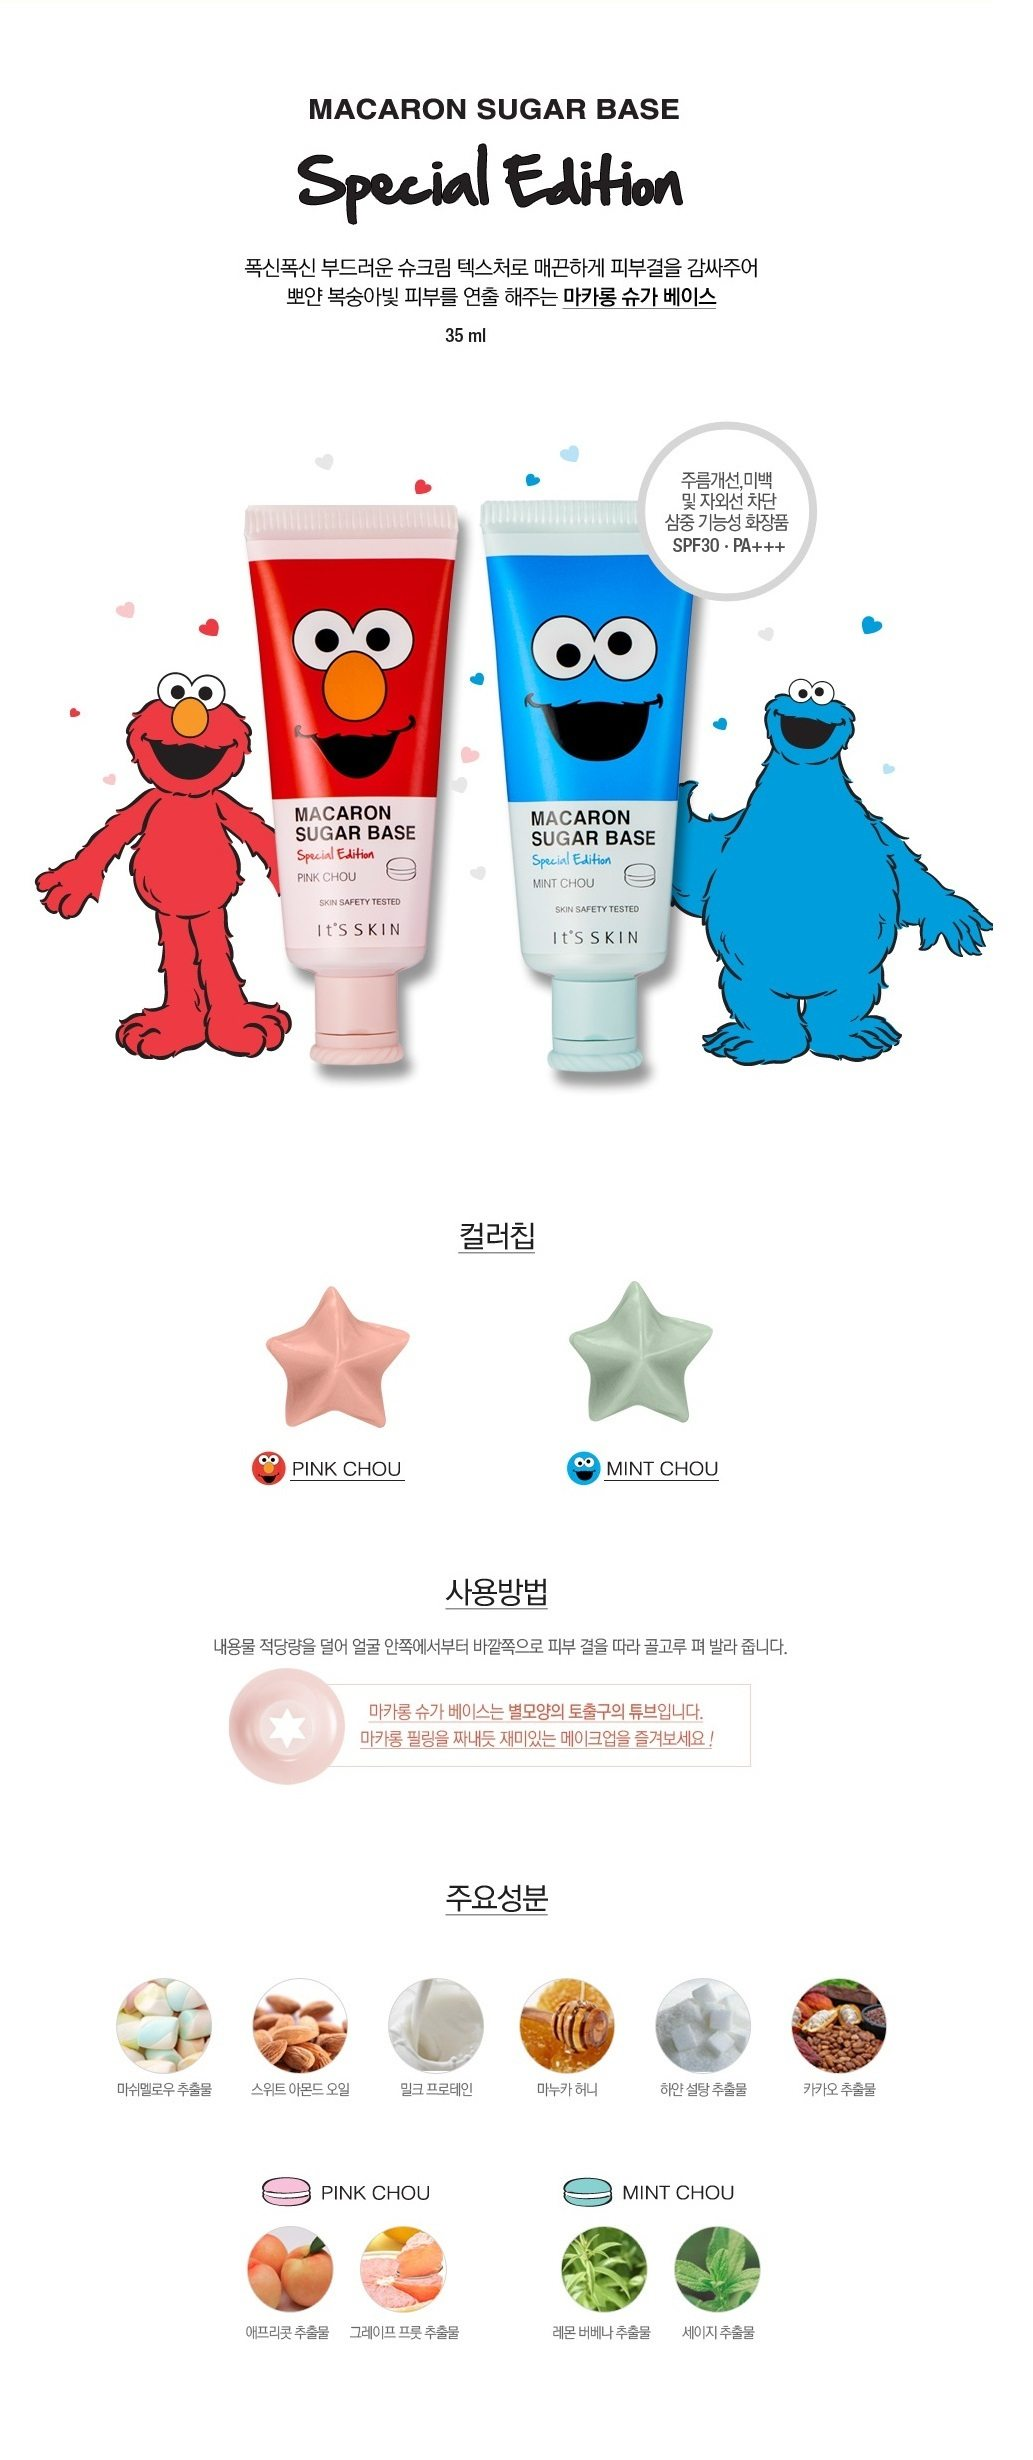 It's Skin Macaron Sugar Base Sesame Street Special Edition korean cosmetic makeup product online shop malaysia brunei mexico1